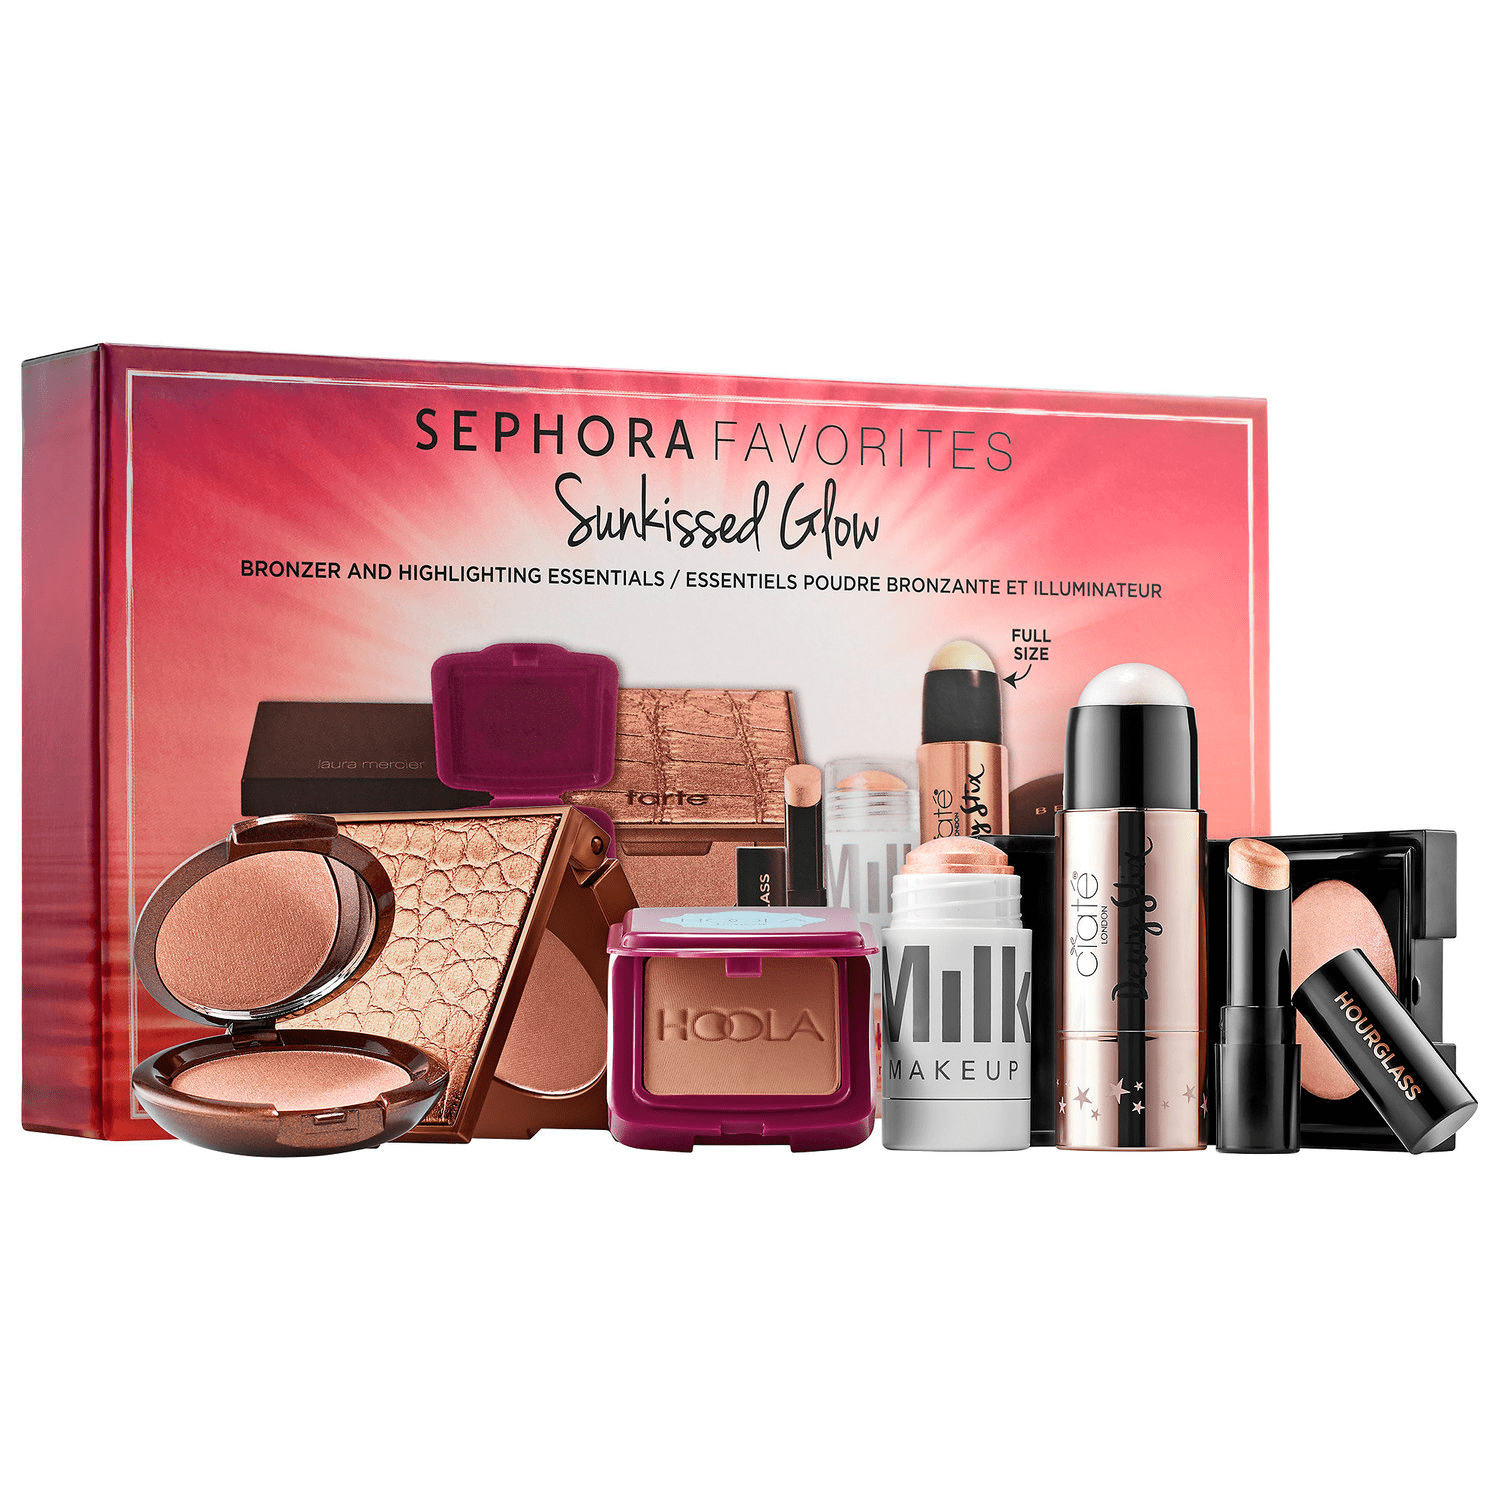 Sephora Favorites Kits Sephora favorites, Sephora